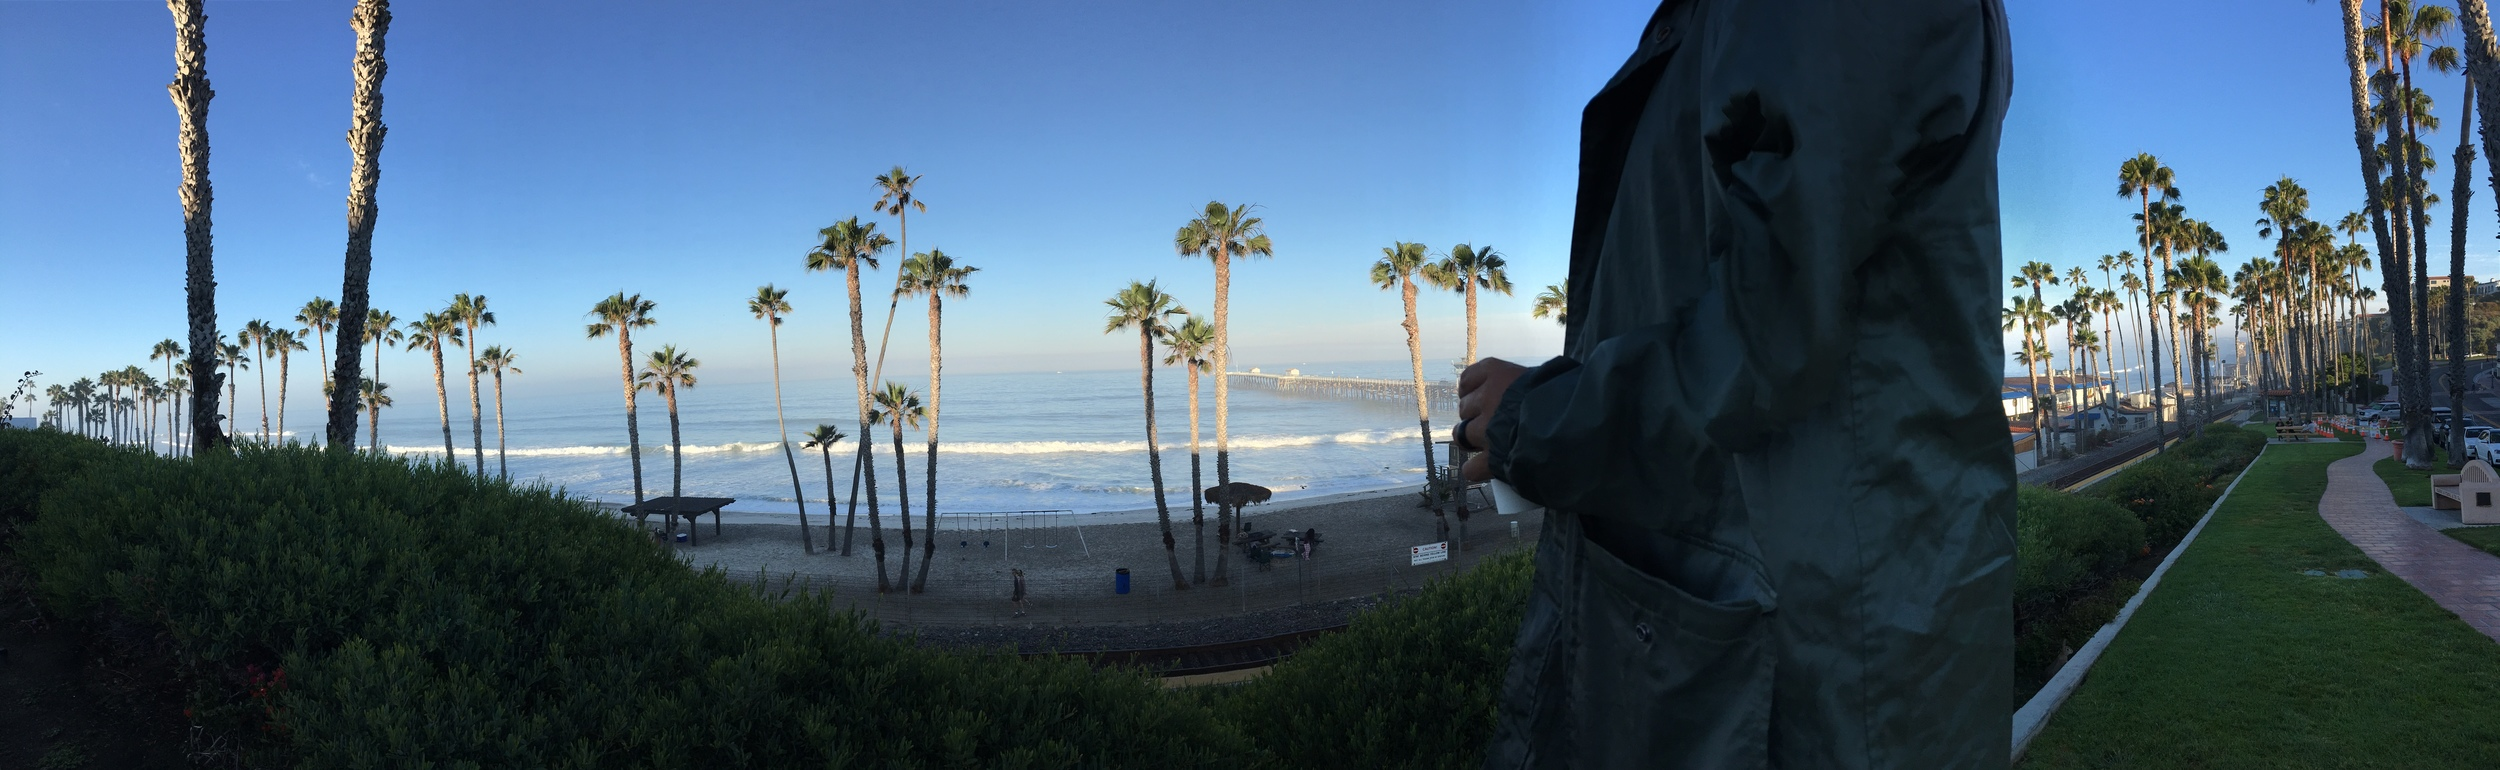 Chauncey Robinson killing it with the panoramic. Thanks for the pic man.